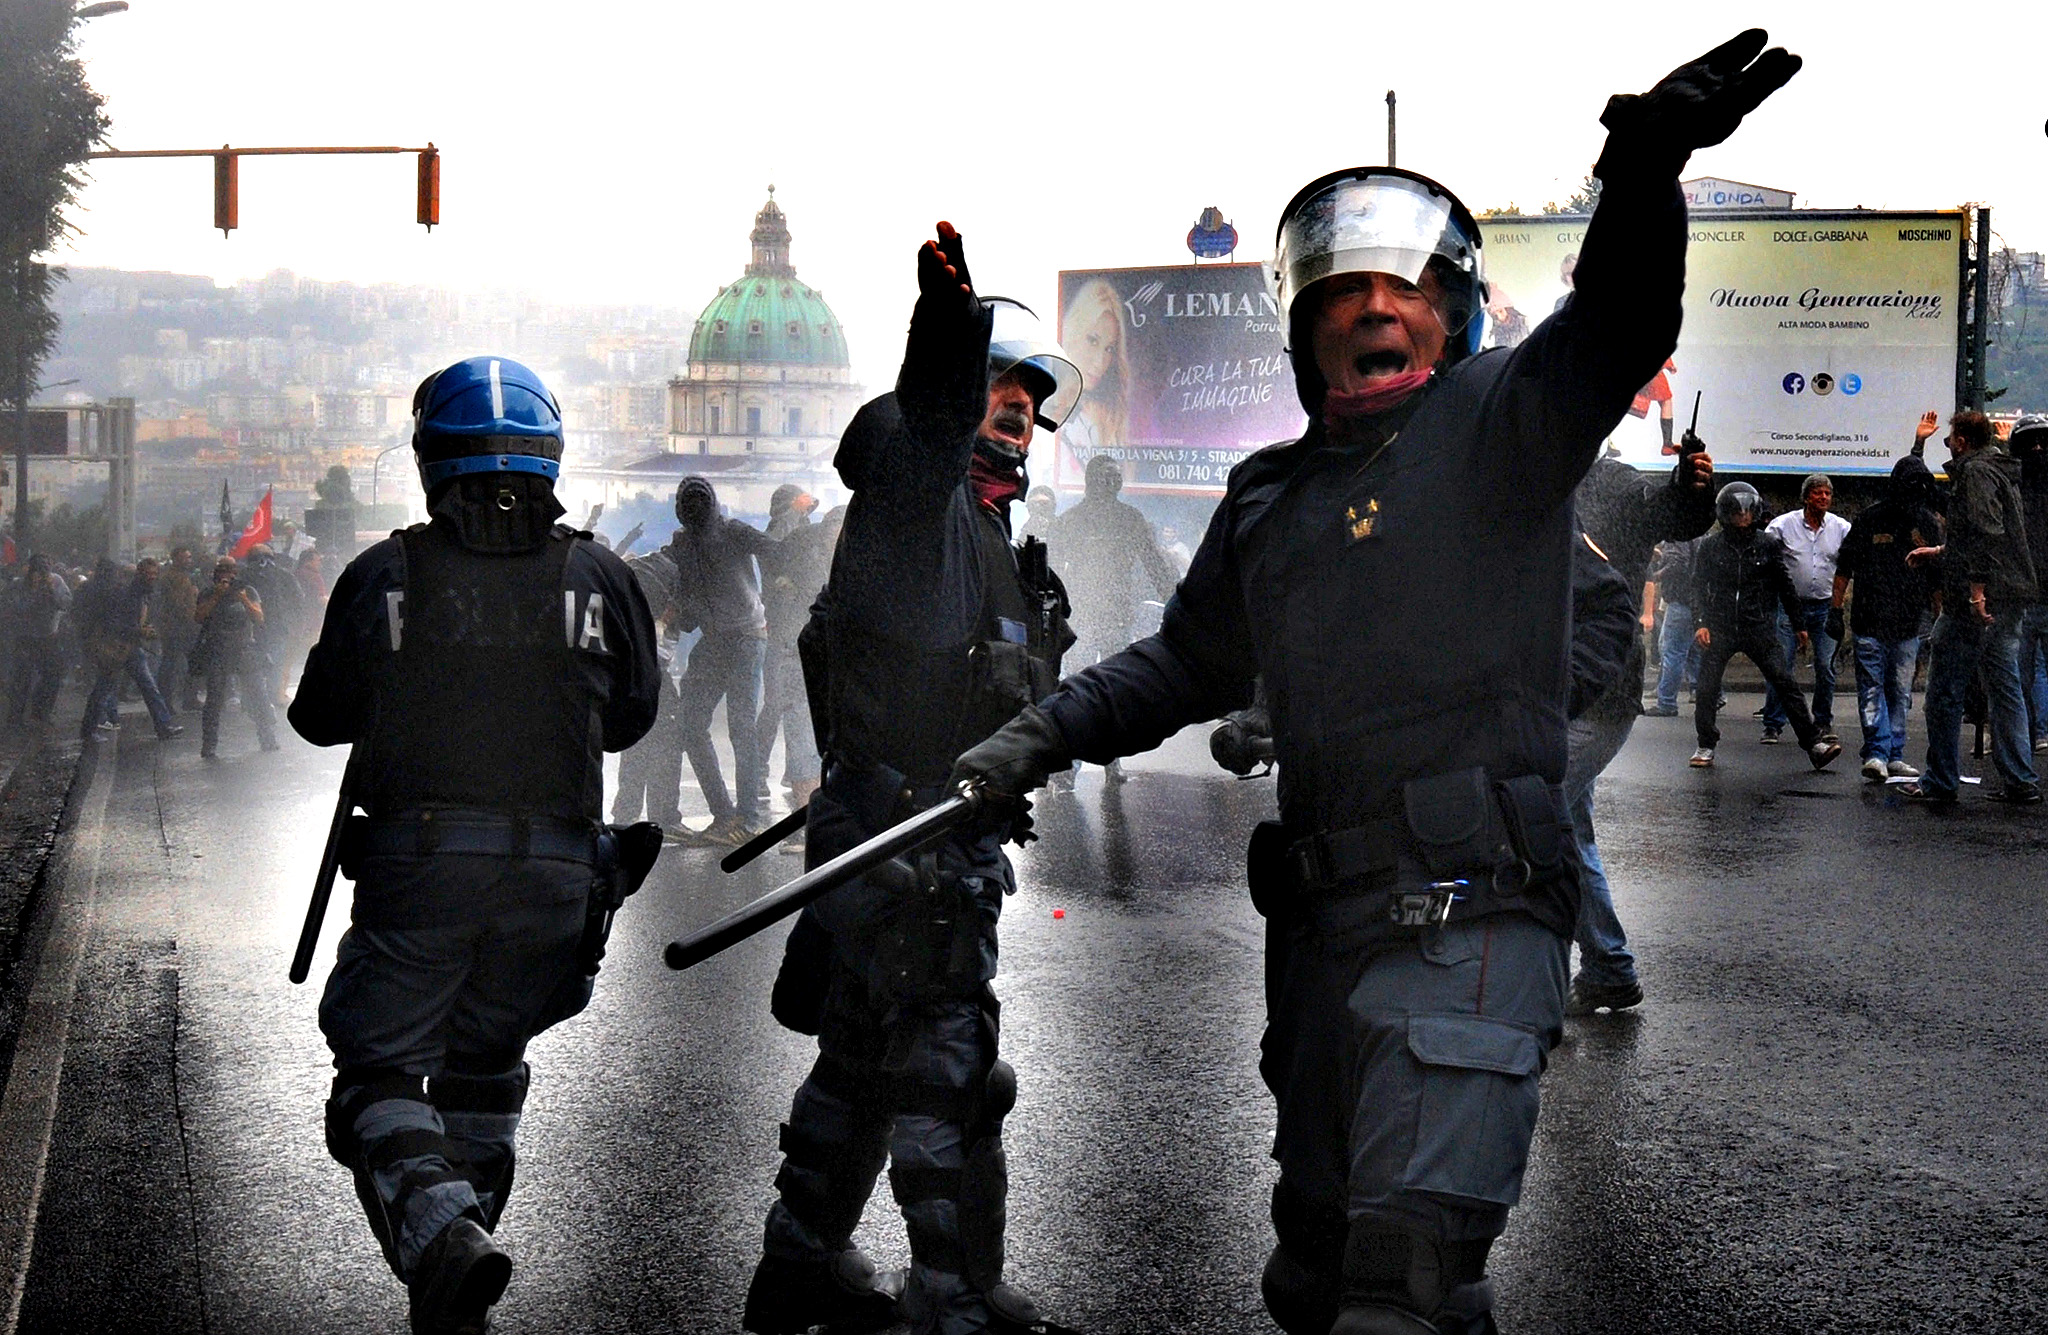 Anti-riot police clash with anti-austerity protesters near the Capodimonte museum during the Governing Council of the European Central Bank (ECB) on October 2, 2014 in Naples. Thousands of anti-austerity demonstrators rallied in Naples today as the European Central Bank convened in the Italian city to discuss how to avert looming deflation in the eurozone.